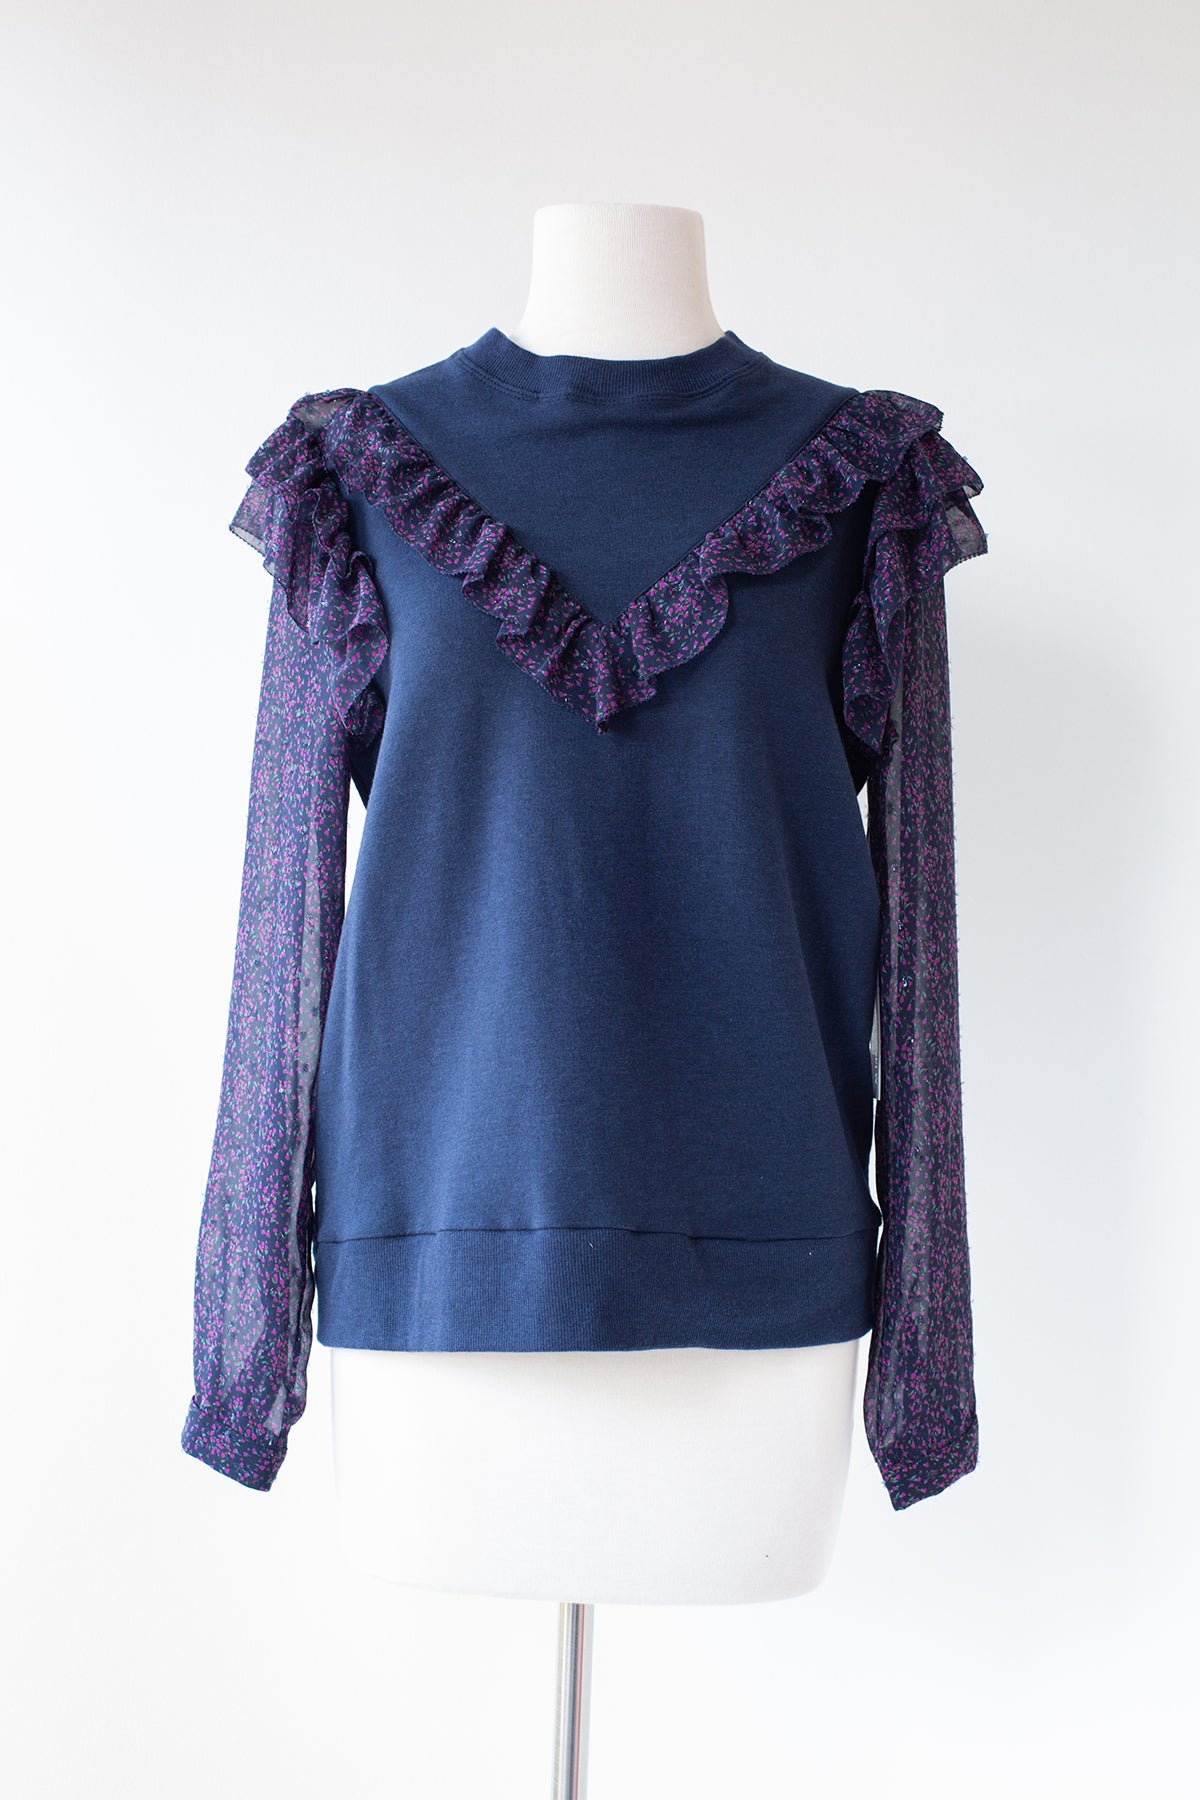 Jo Sheer Sleeve Top